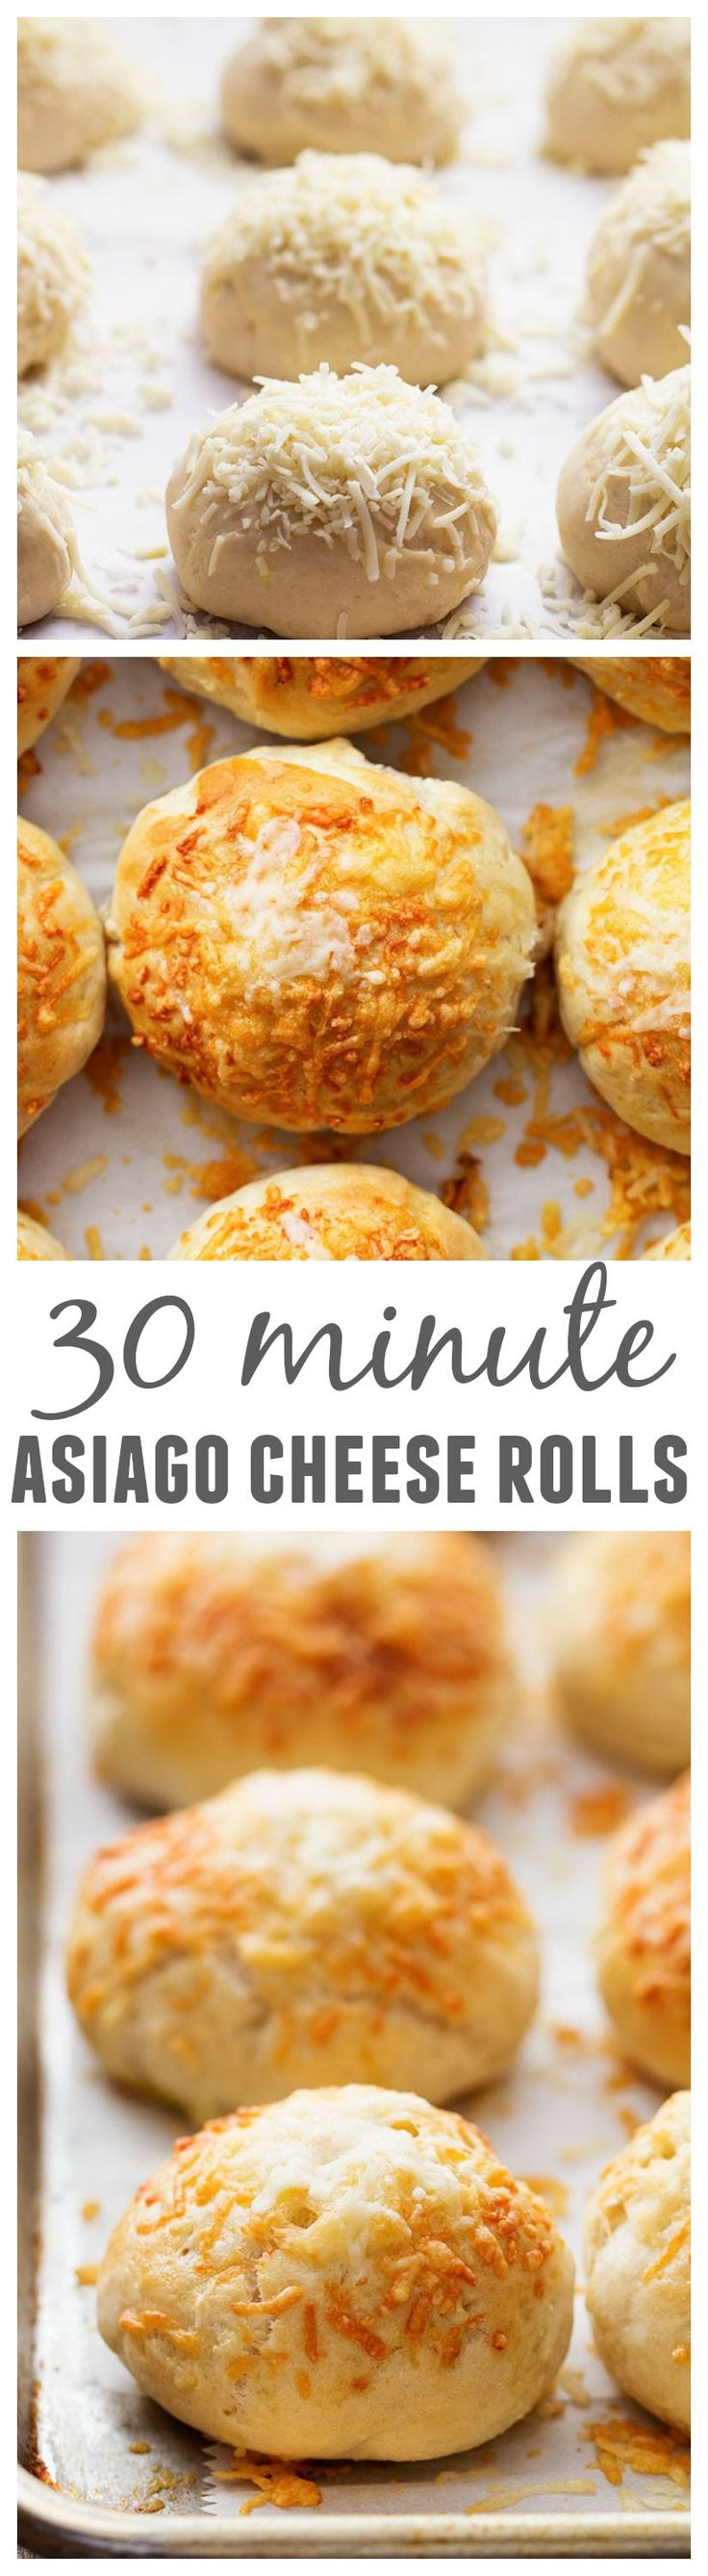 These rolls are made with quick and easy dough and are ready in 30 minutes! With delicious Asiago Cheese on top of these soft and perfect rolls, they are sure to be a hit!